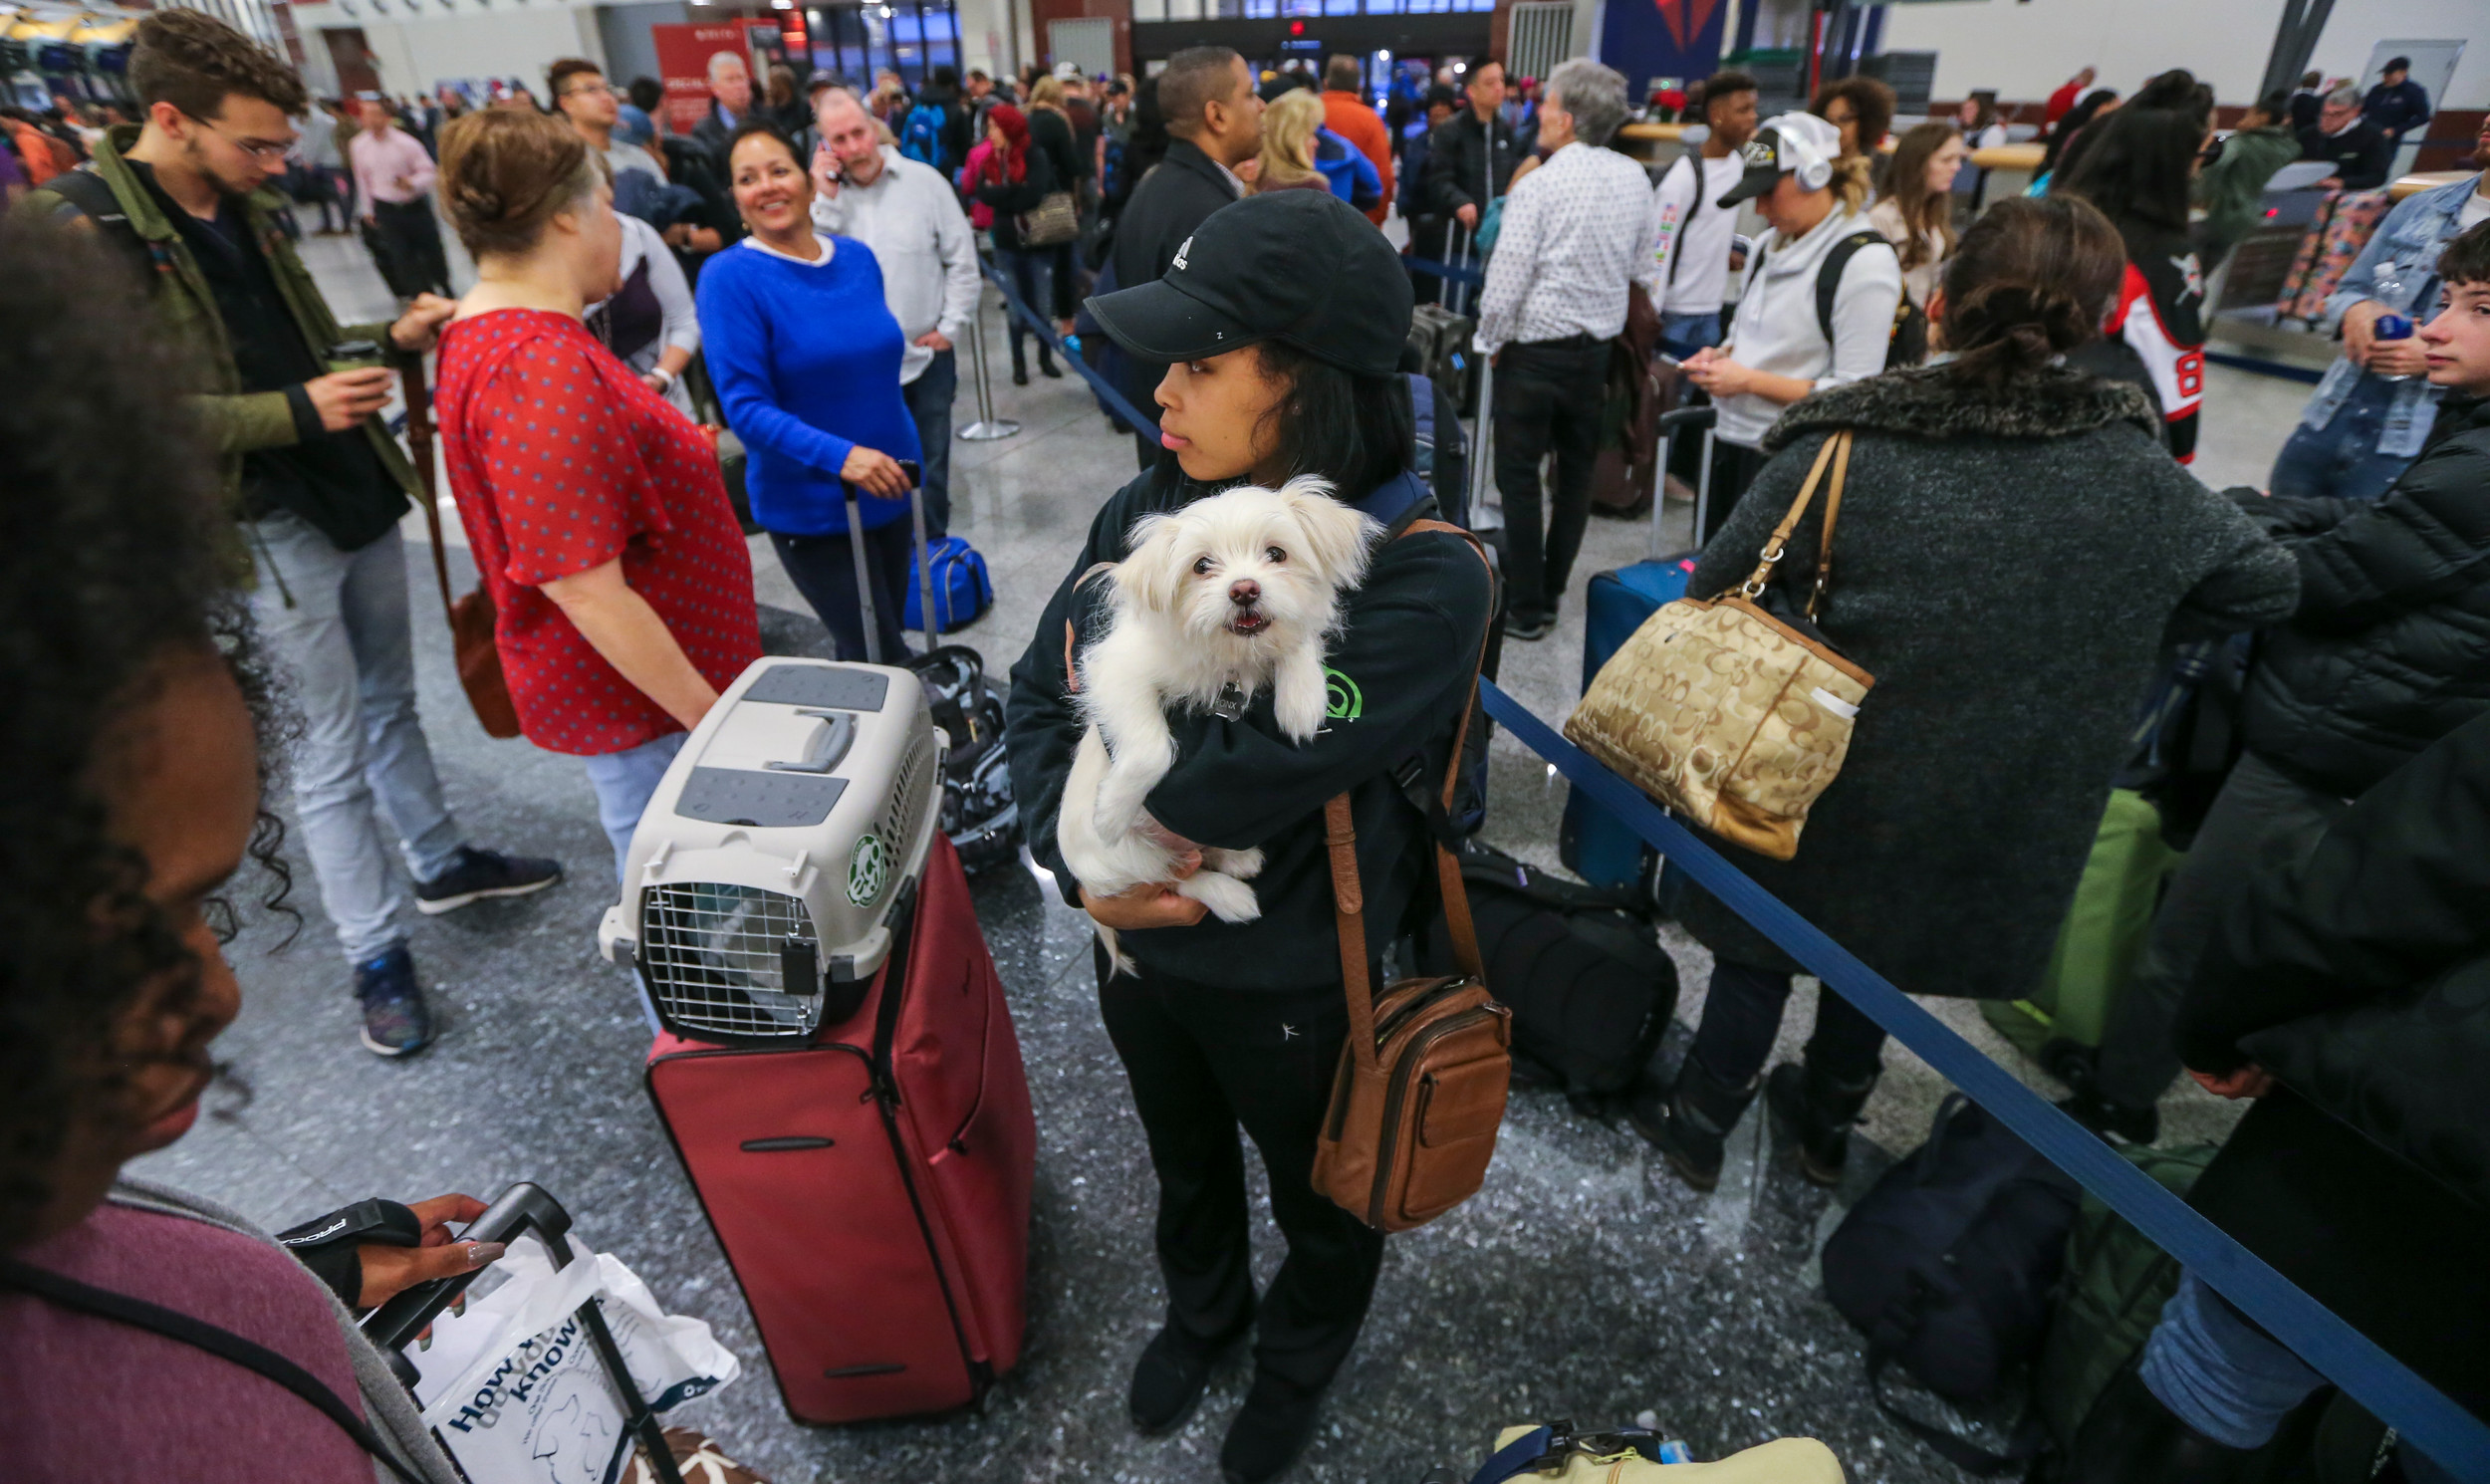 Delta CEO: $25M to $50M Lost in Atlanta Airport Outage